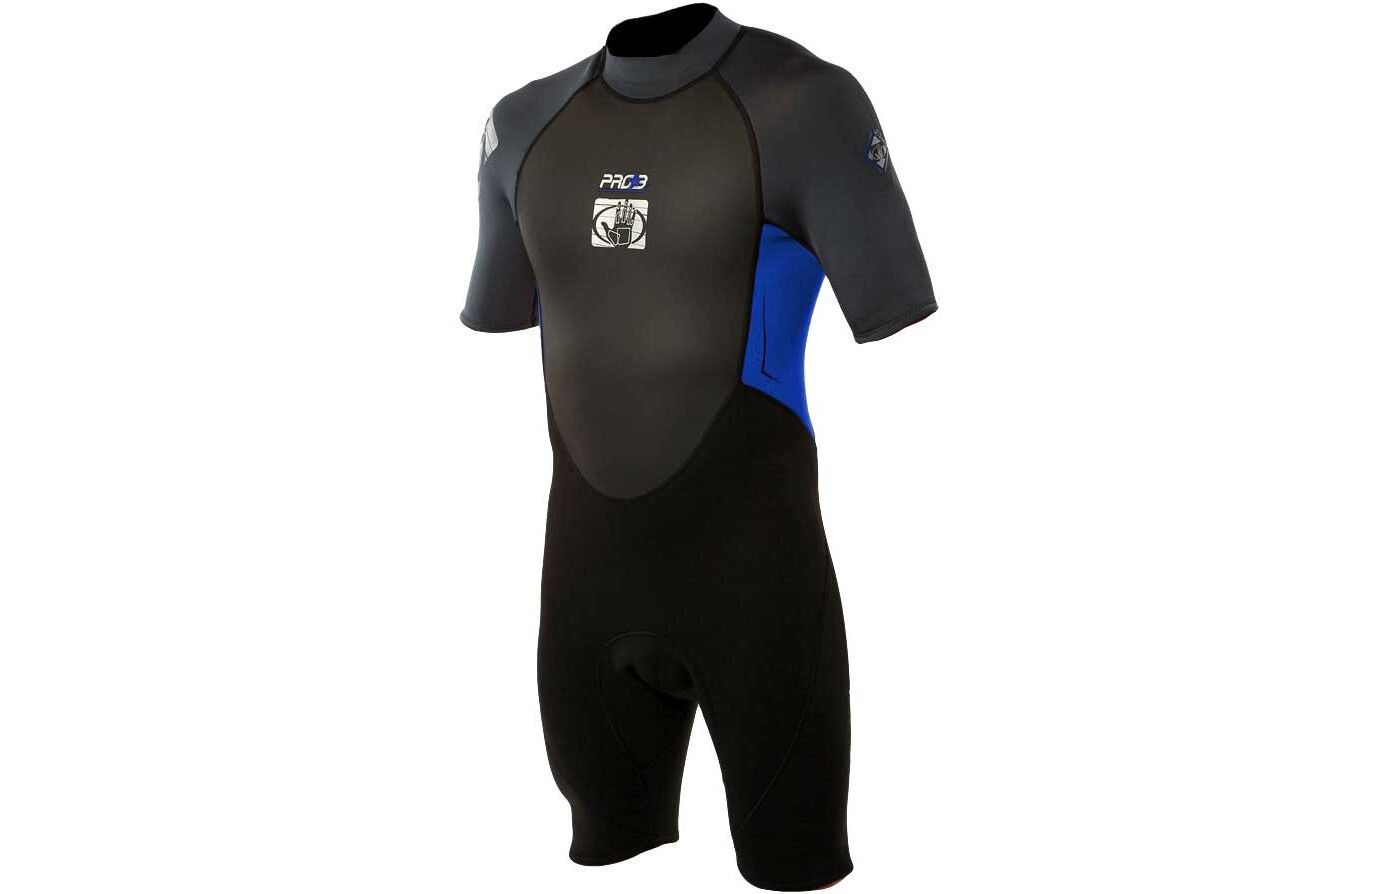 Body Glove Men's Pro 3 2mm Spring Wetsuit